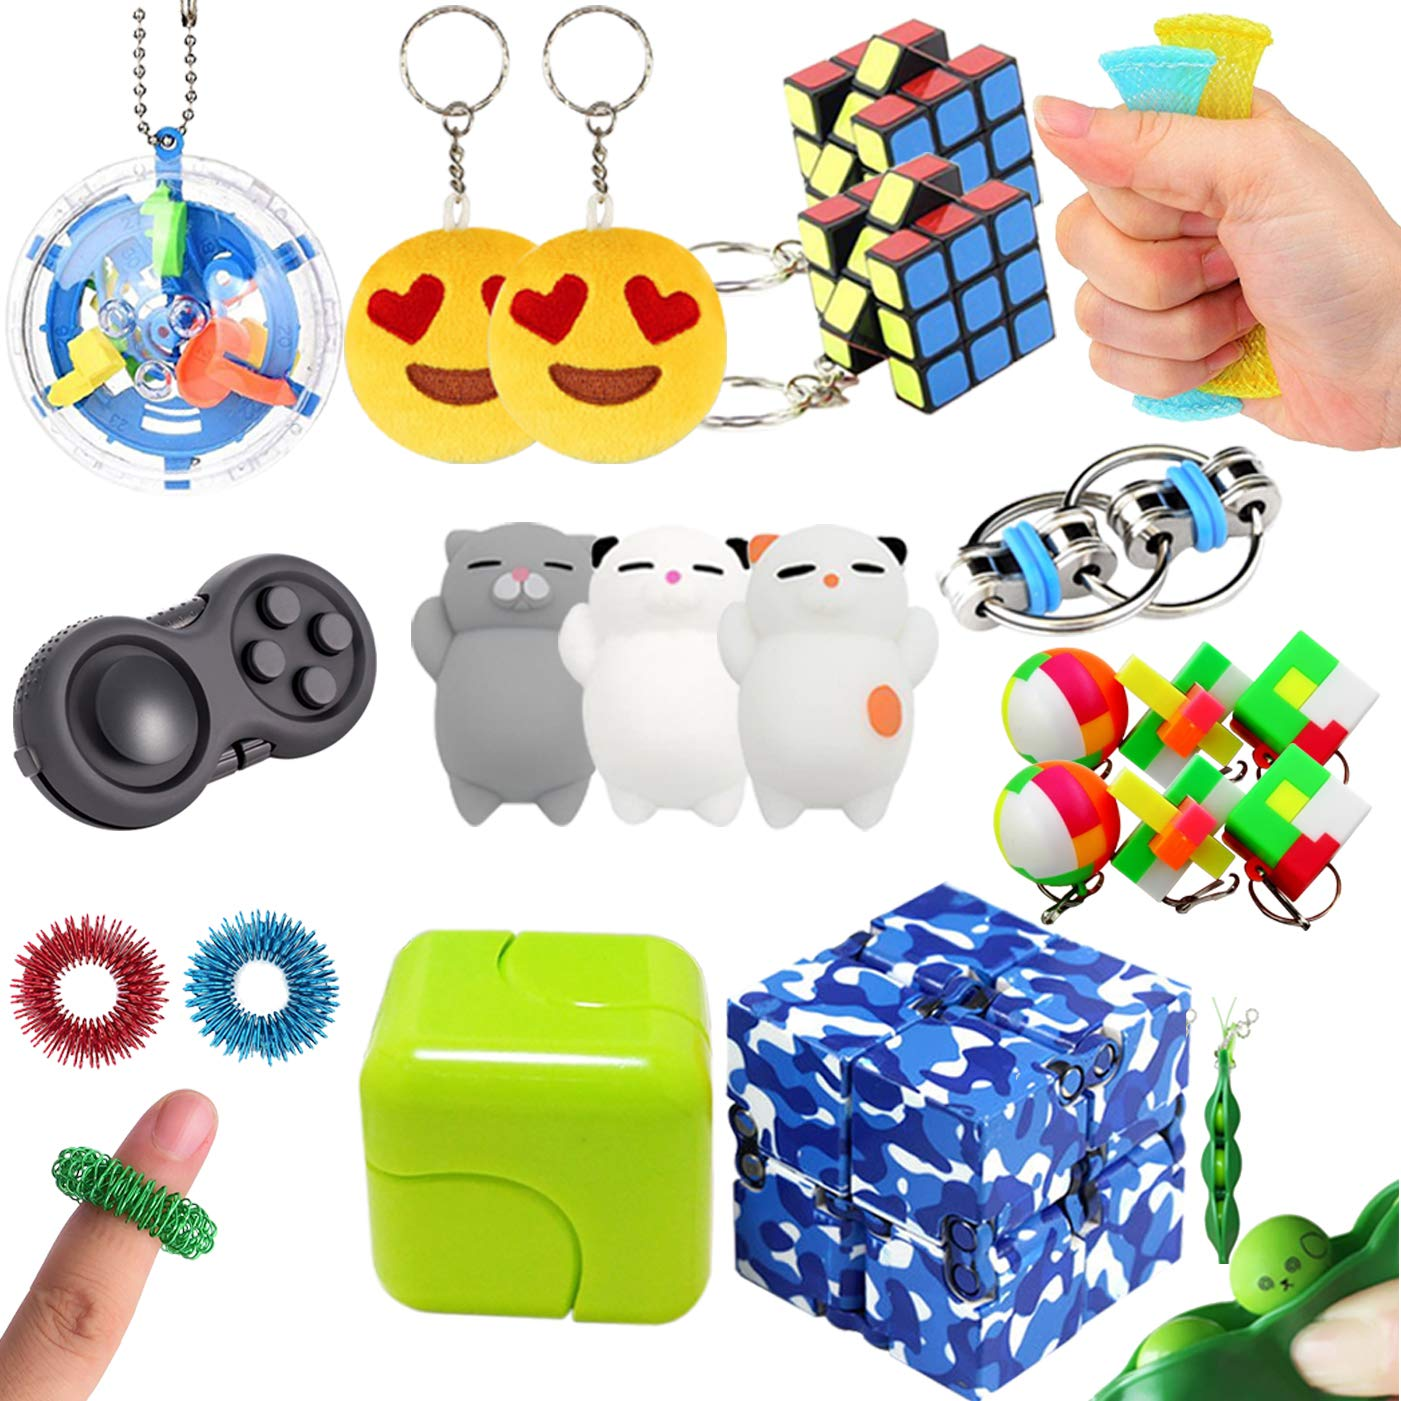 Leeche 23 Pack Sensory Toys for Kids Handheld Fidget Toys Bundle for Christmas Stocking Stuffers Infinity Cube Fidget Ring Squishies Toys Autism Toys for Add ADHD